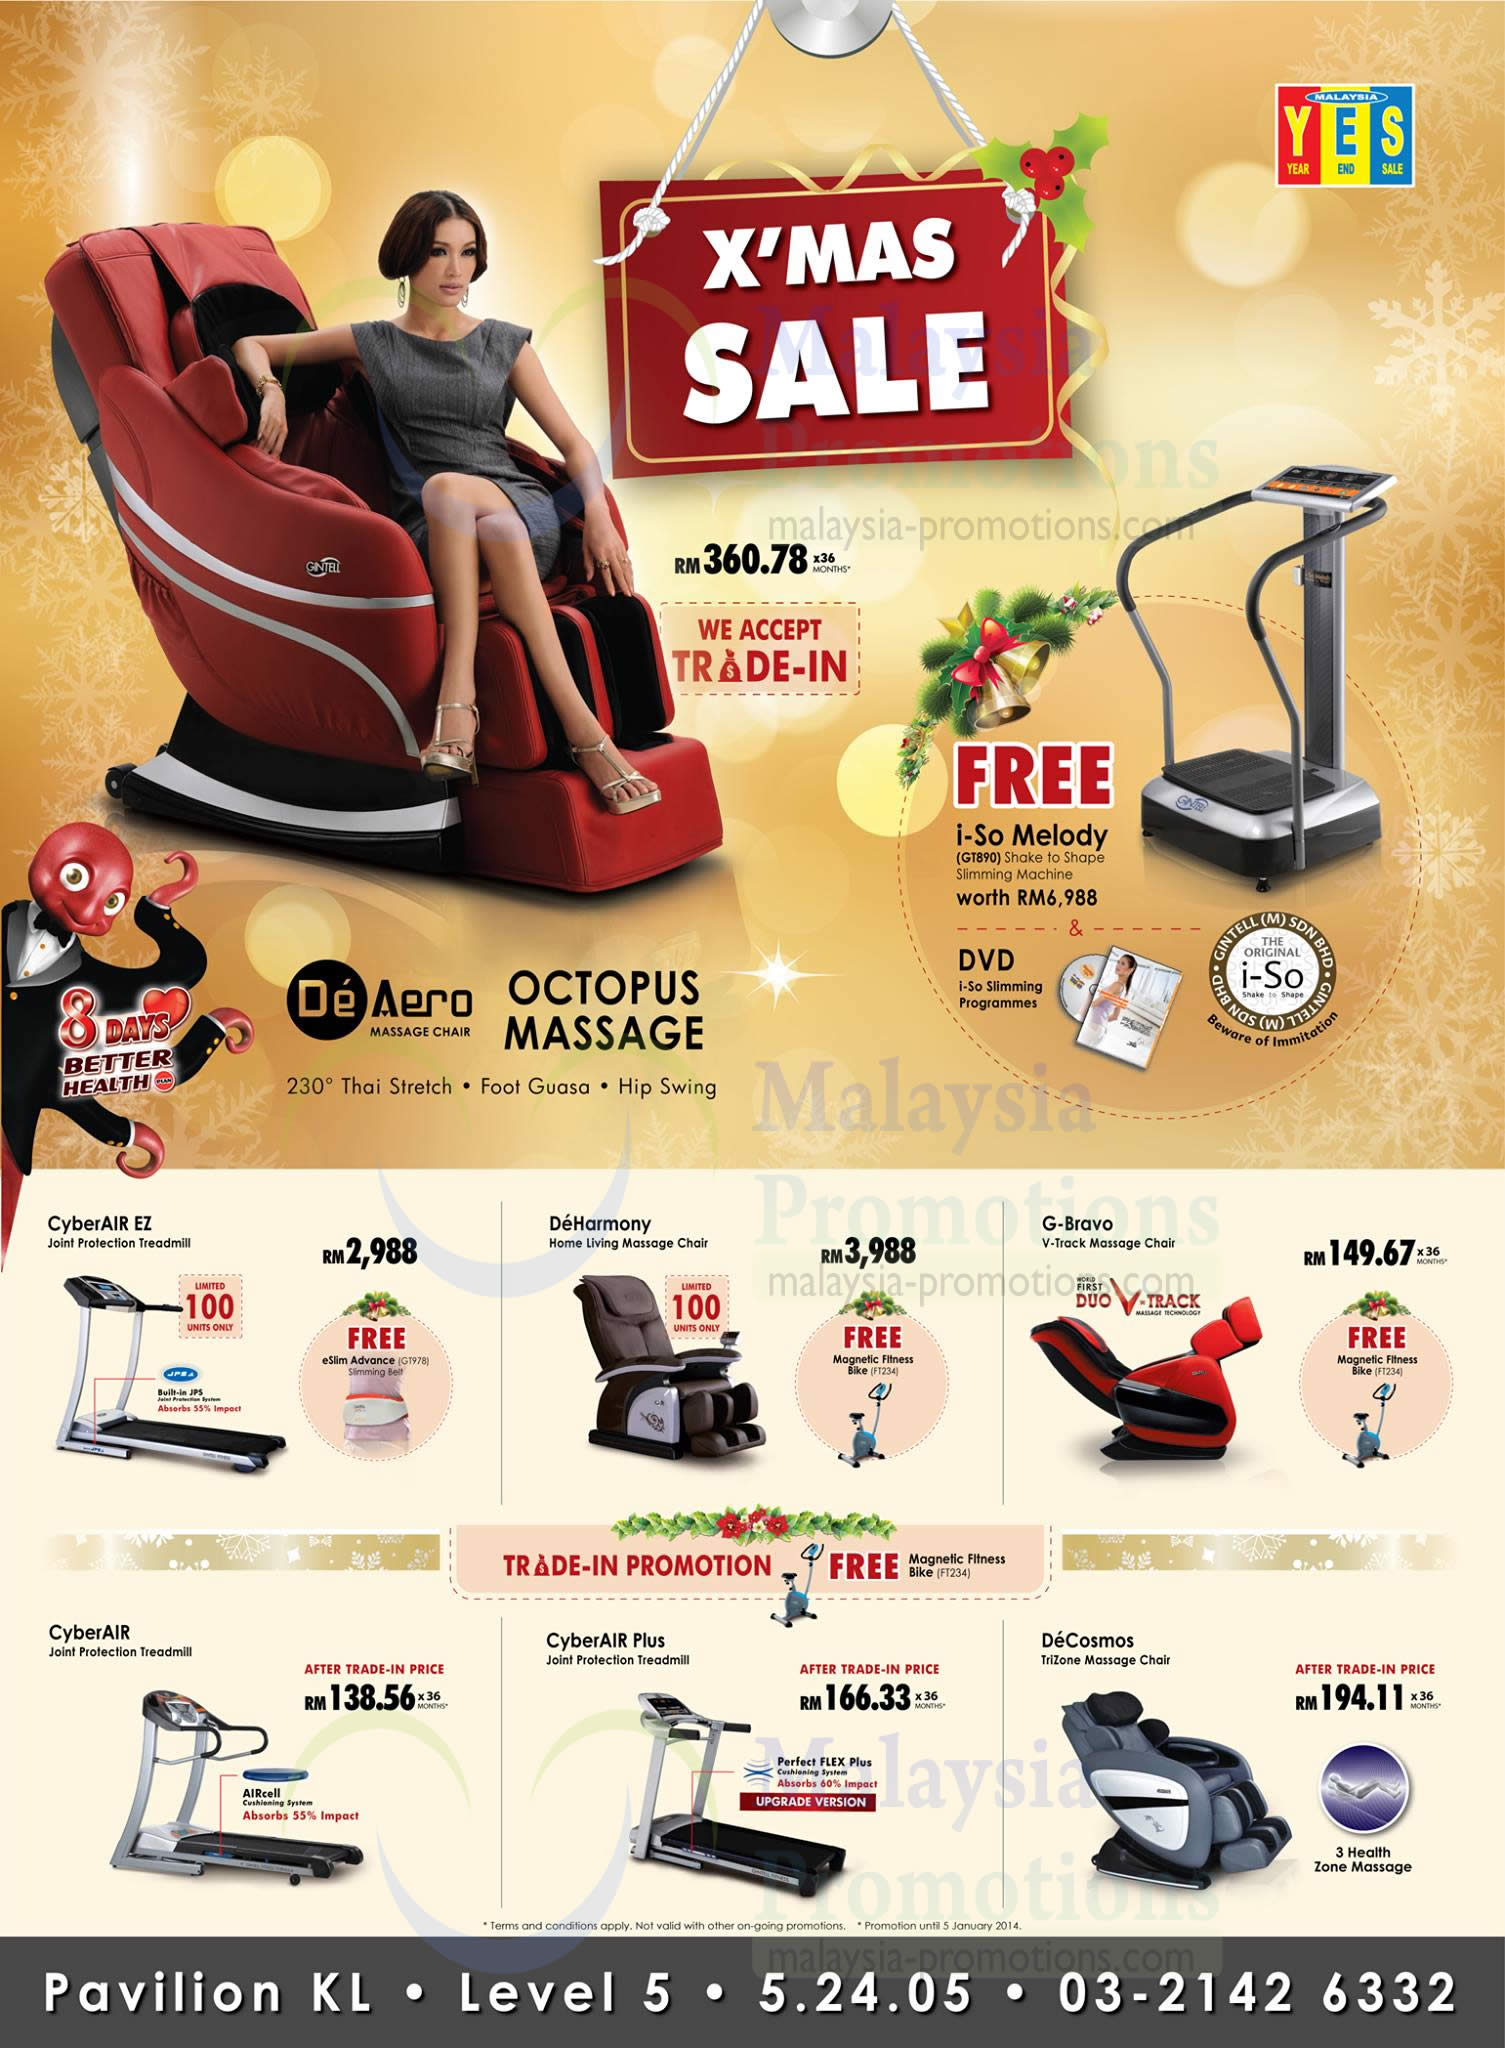 gintell fitness equipment massage chairs offers pavilion kl 4